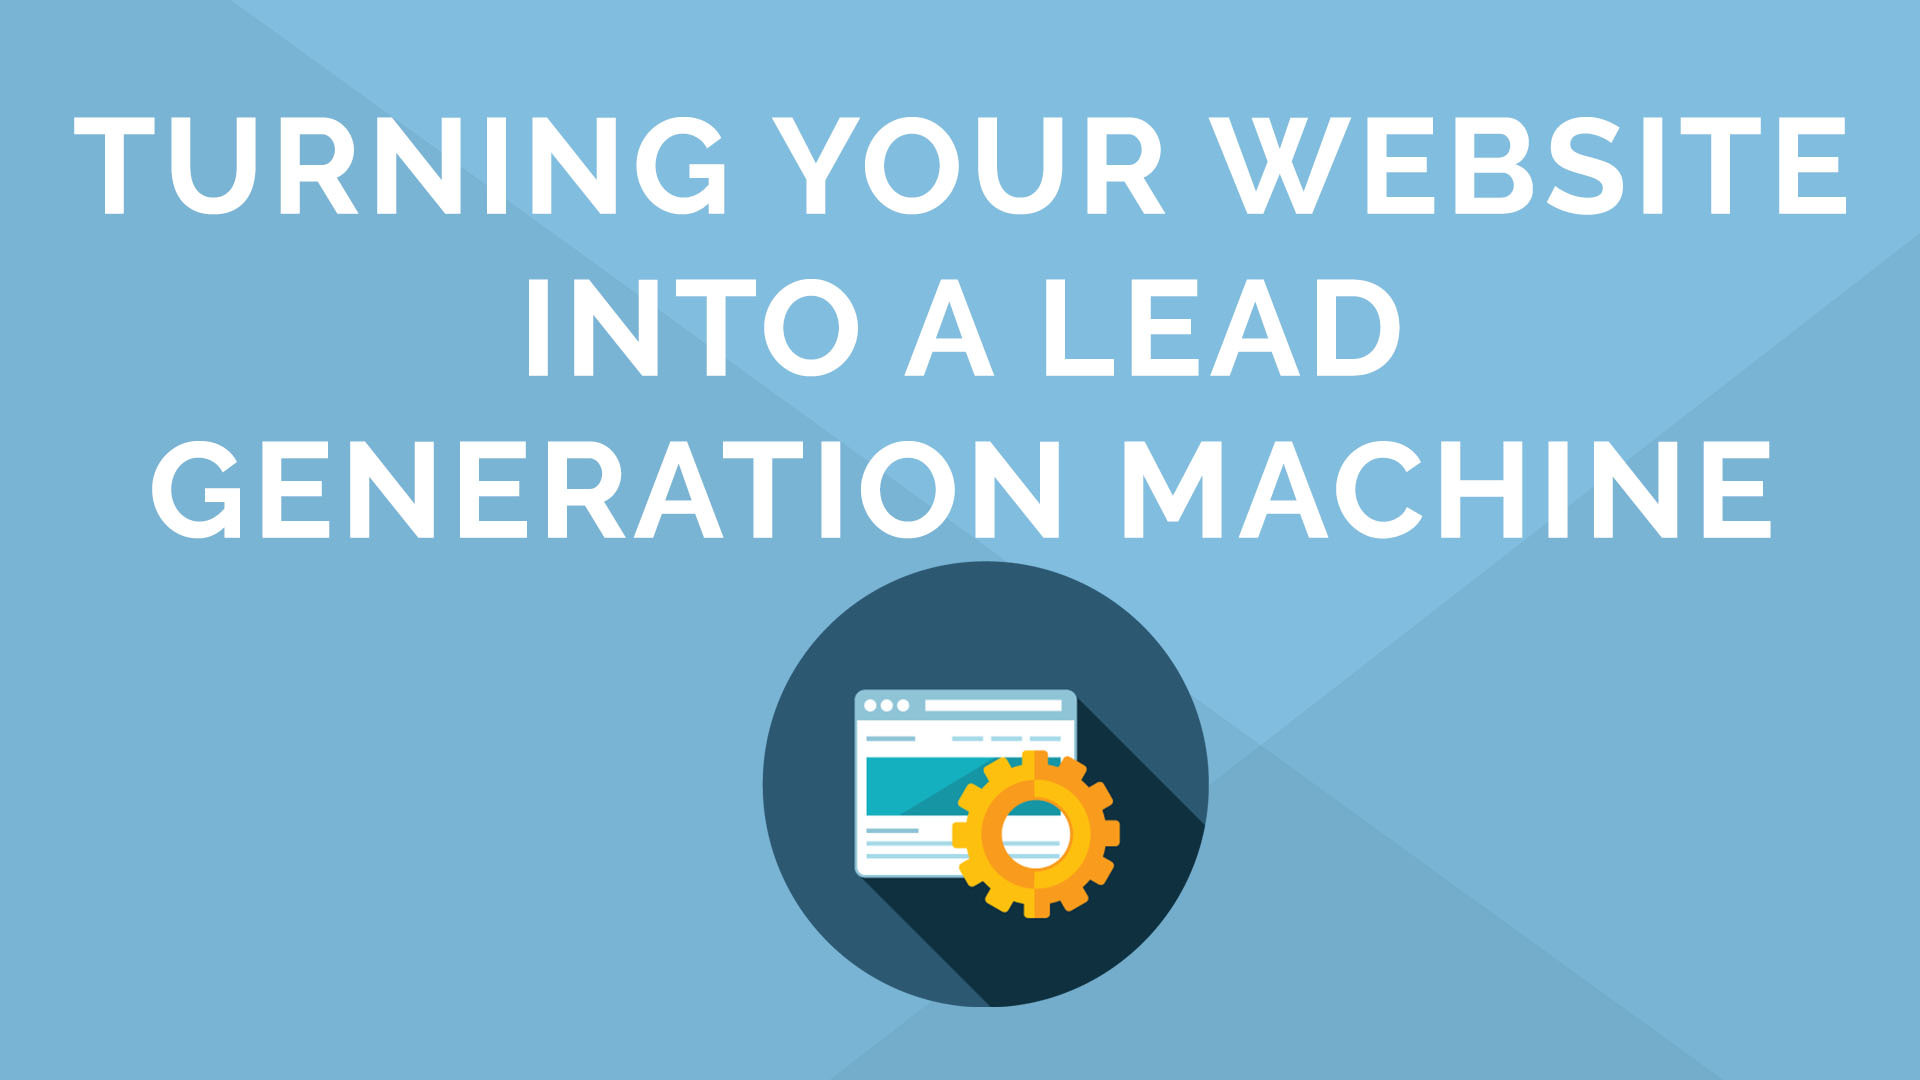 Turning Your Website into a Lead Generation Machine in 15 minutes